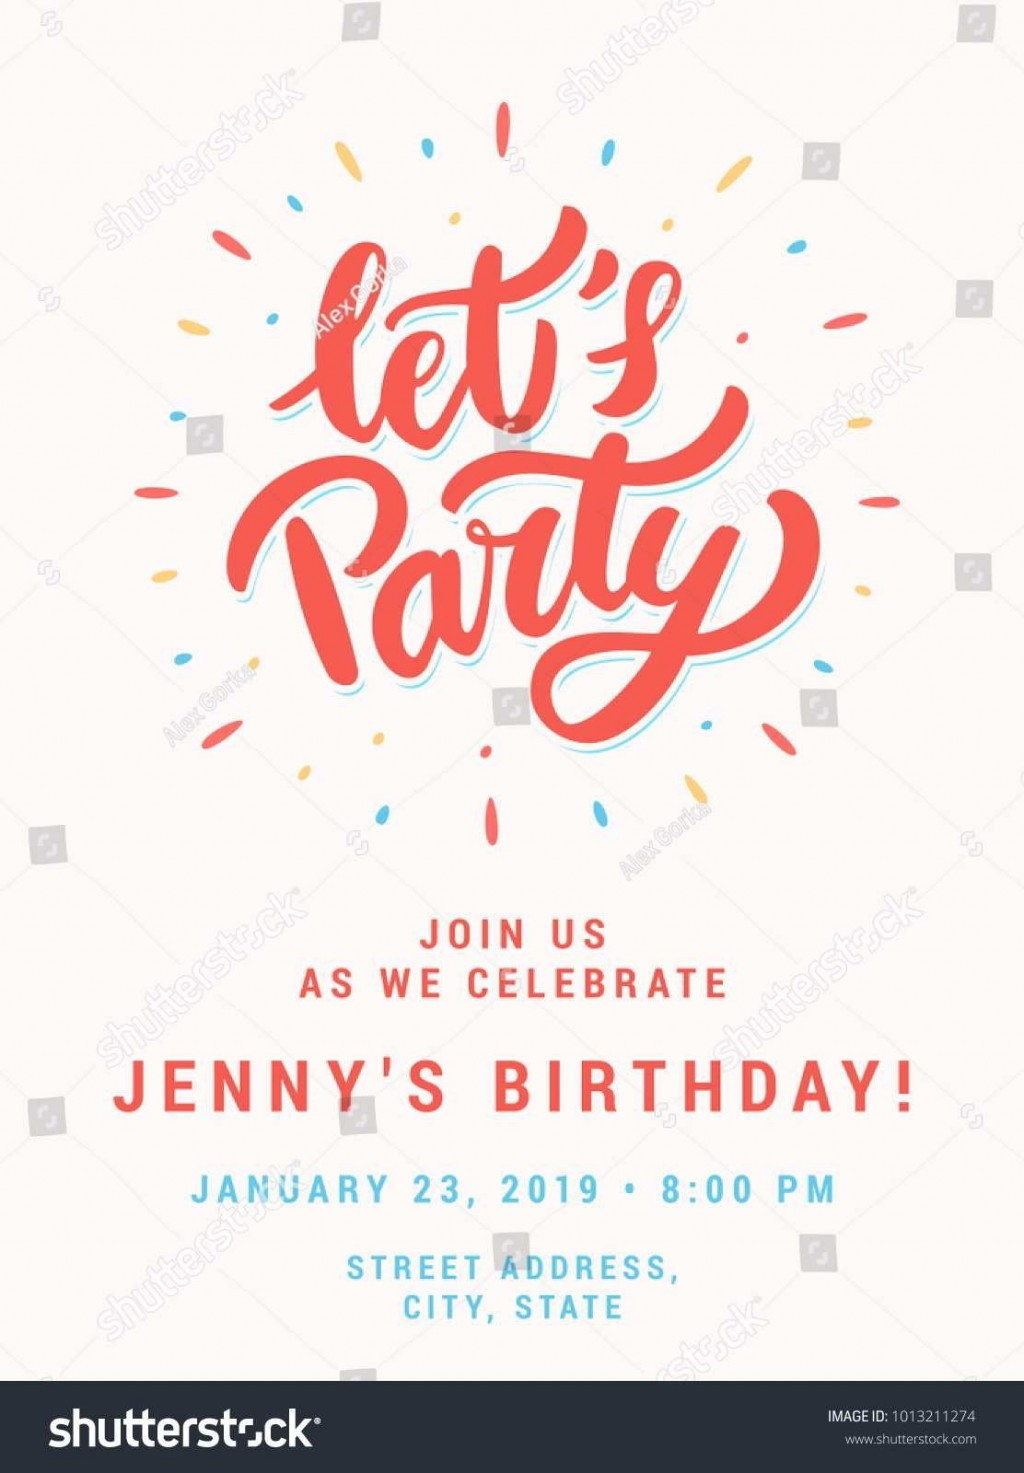 003 Wonderful Birthday Party Invitation Template Word Free Example  Download InviteLarge